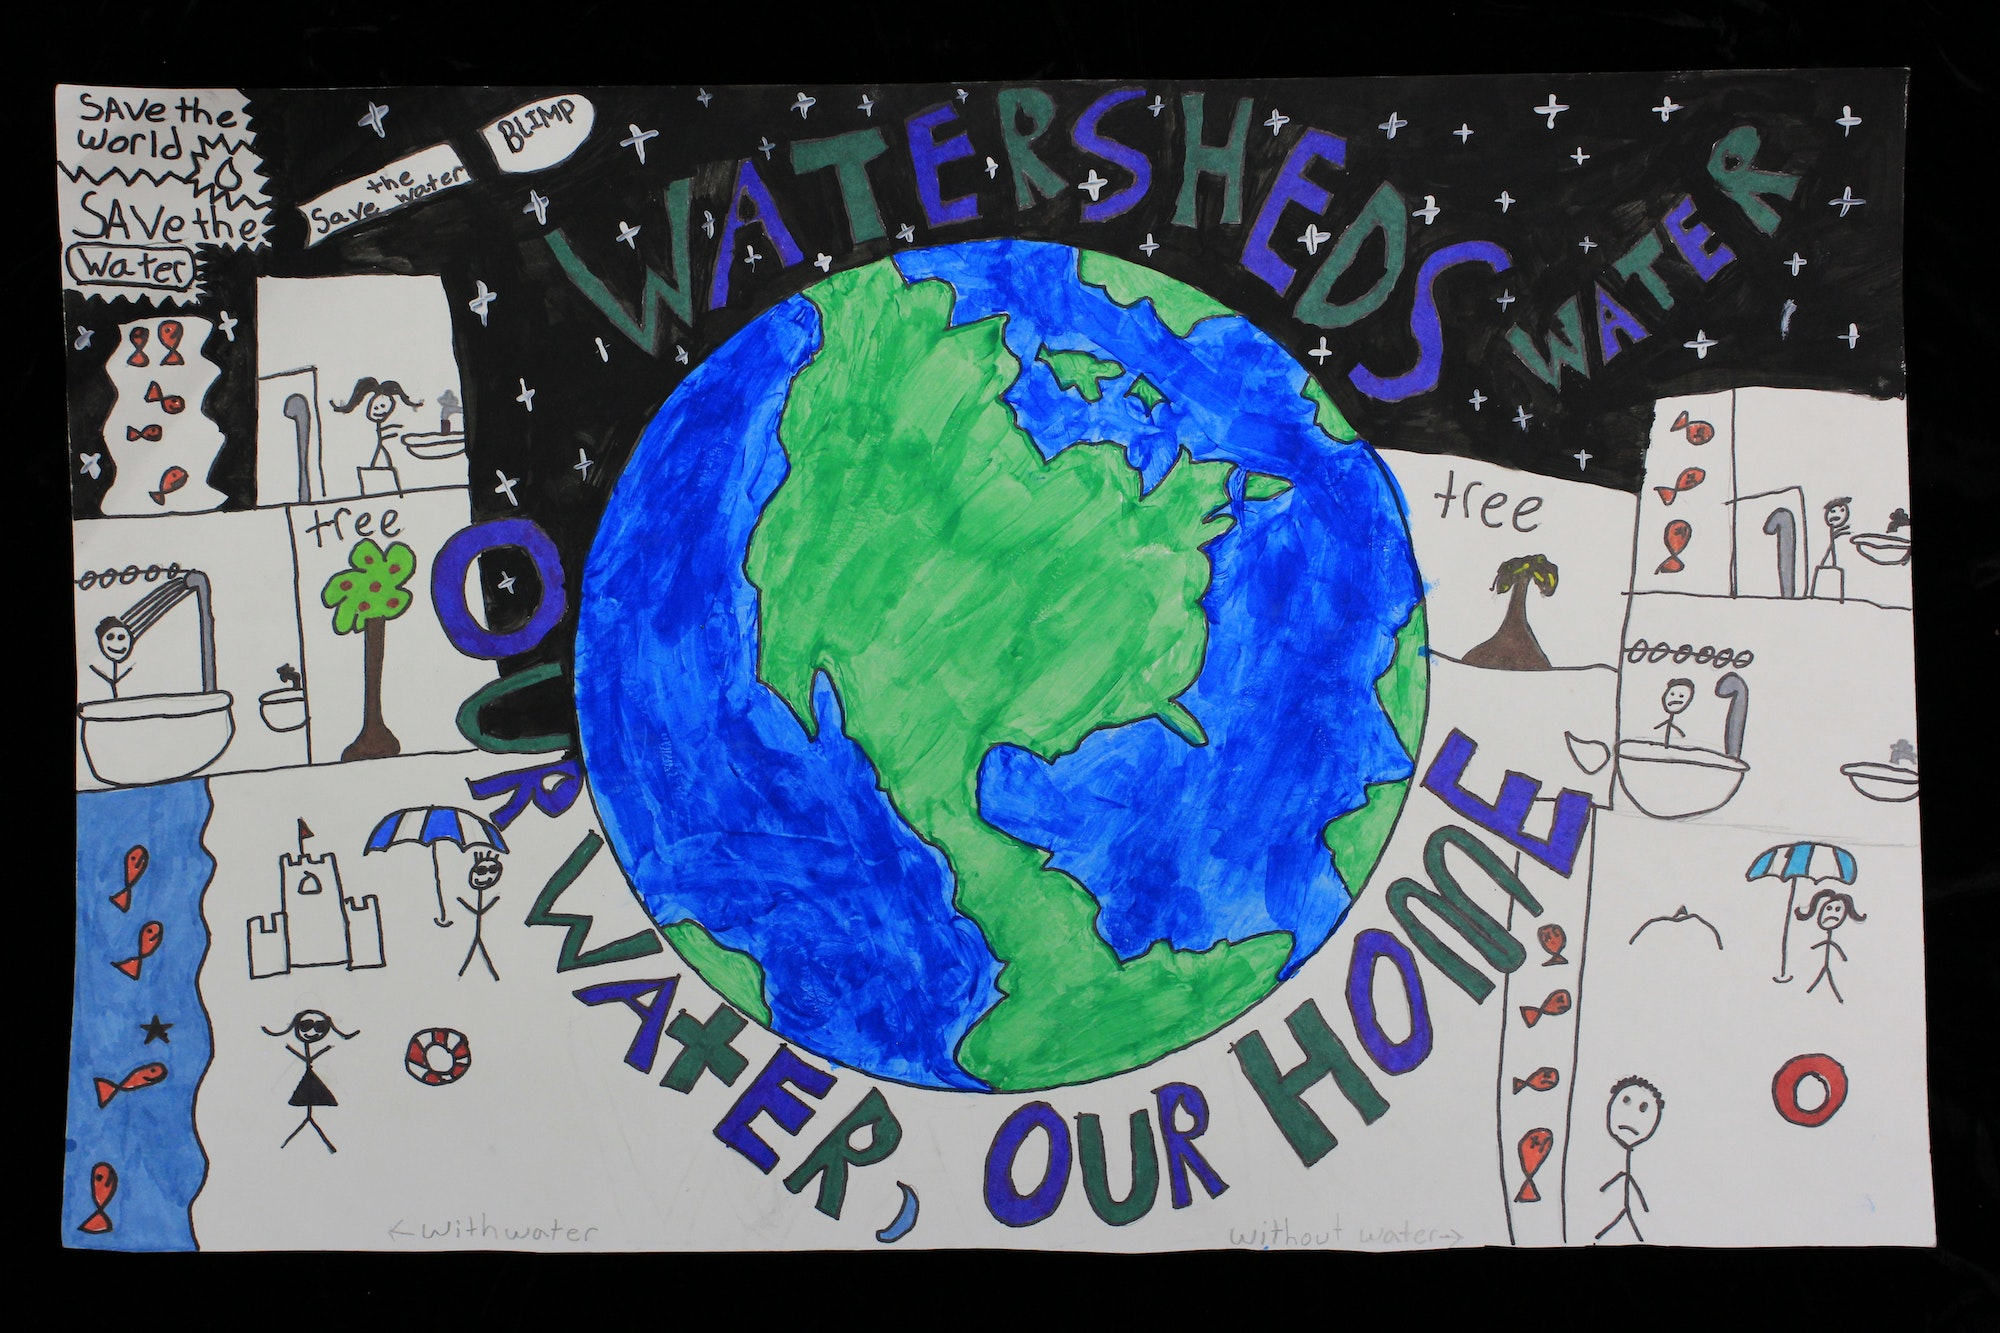 Winning 2018 poster for grade 5 by Alexandra Mattas of Mojave.